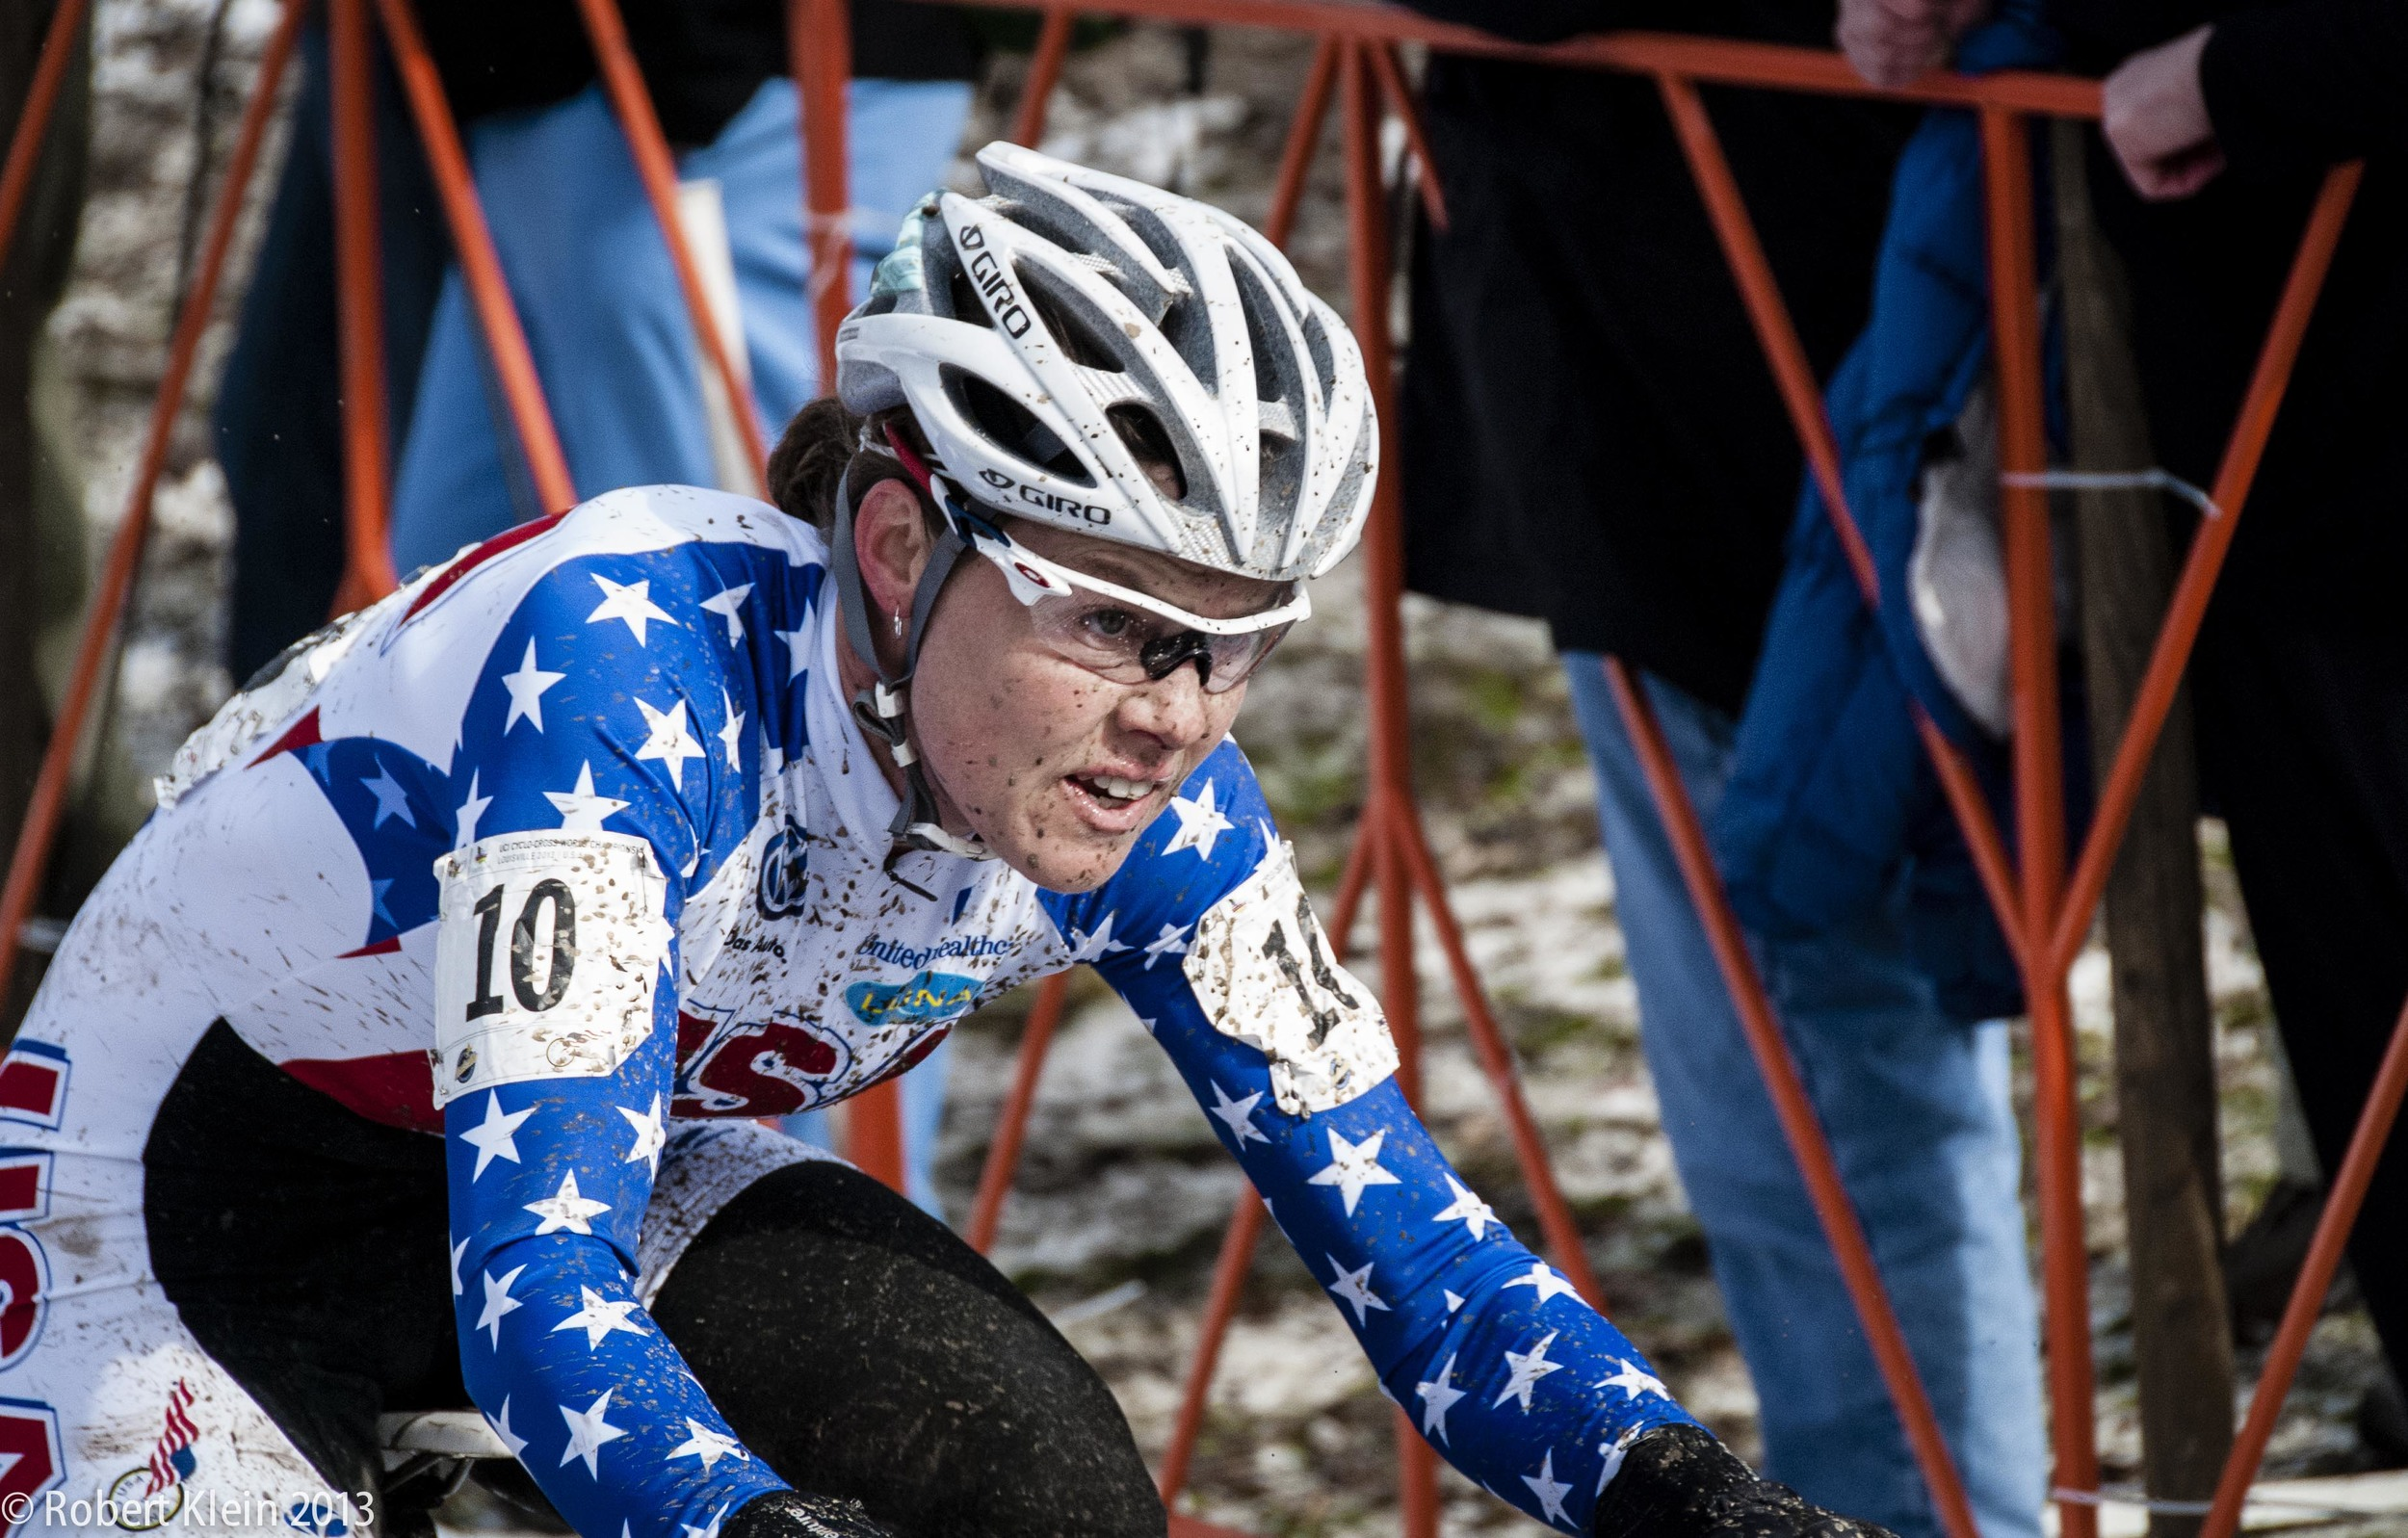 Cyclocross132013(92of 317).jpg